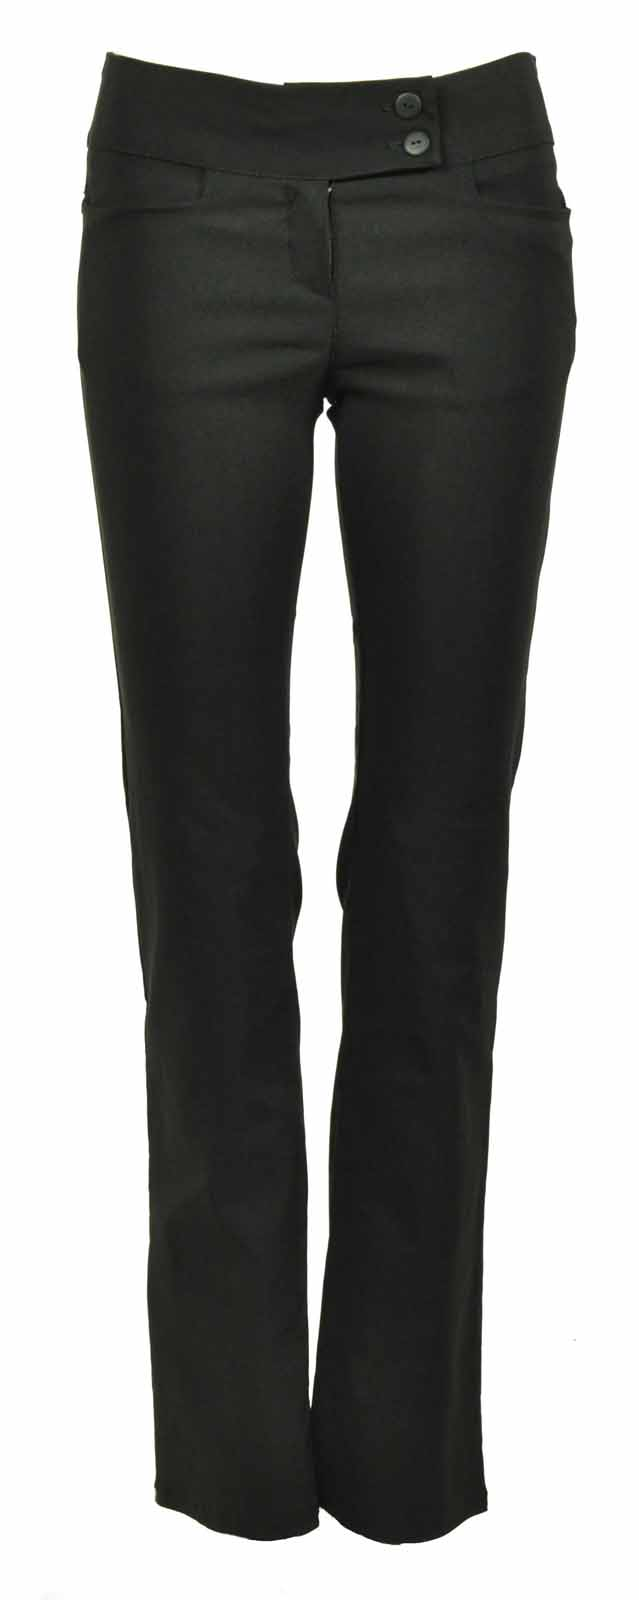 Skinny Bootcut Jeans Womens